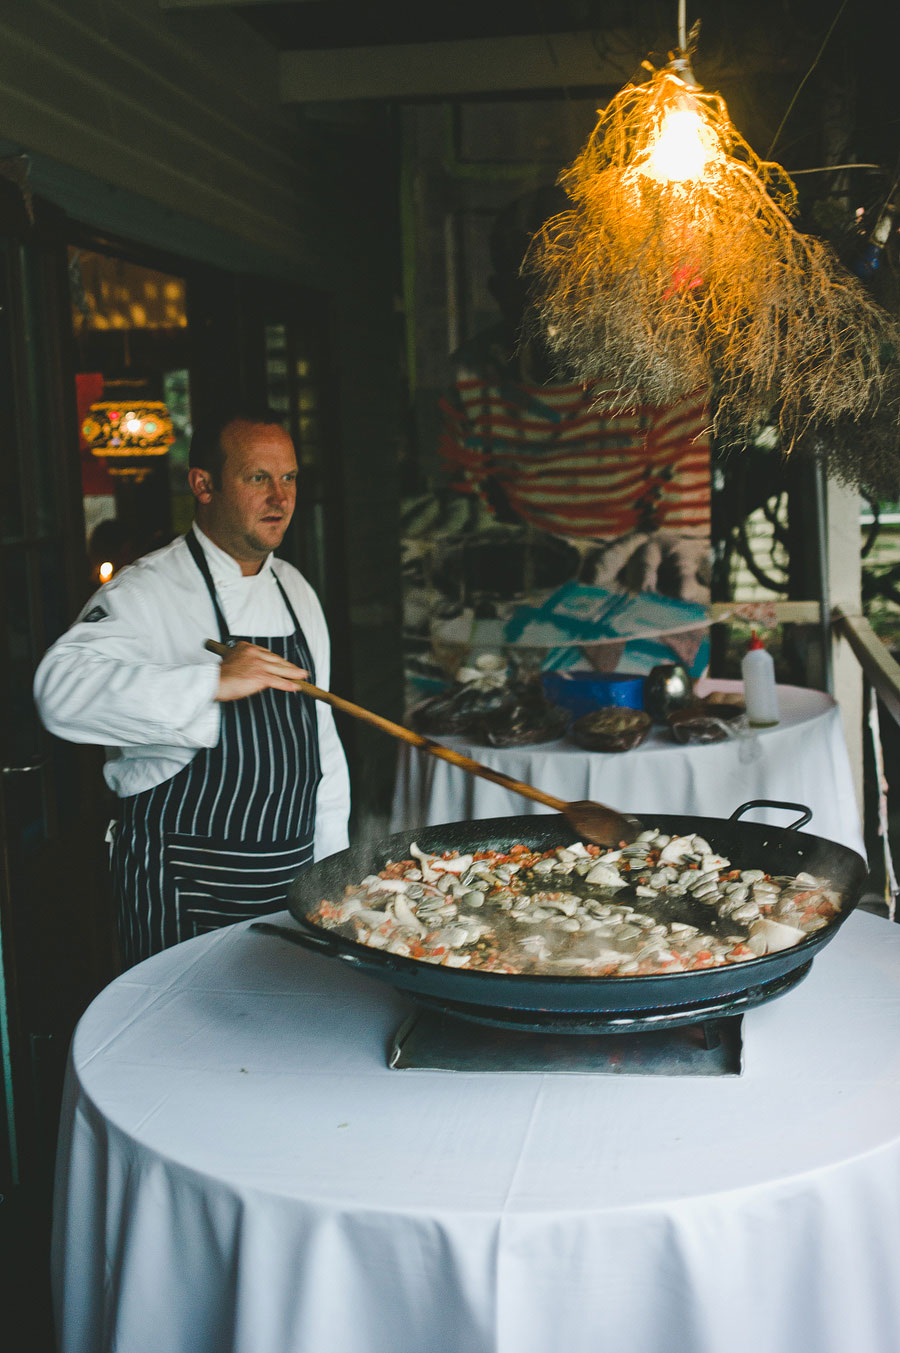 Chef cooking paella at Babalu bar - Lorne wedding